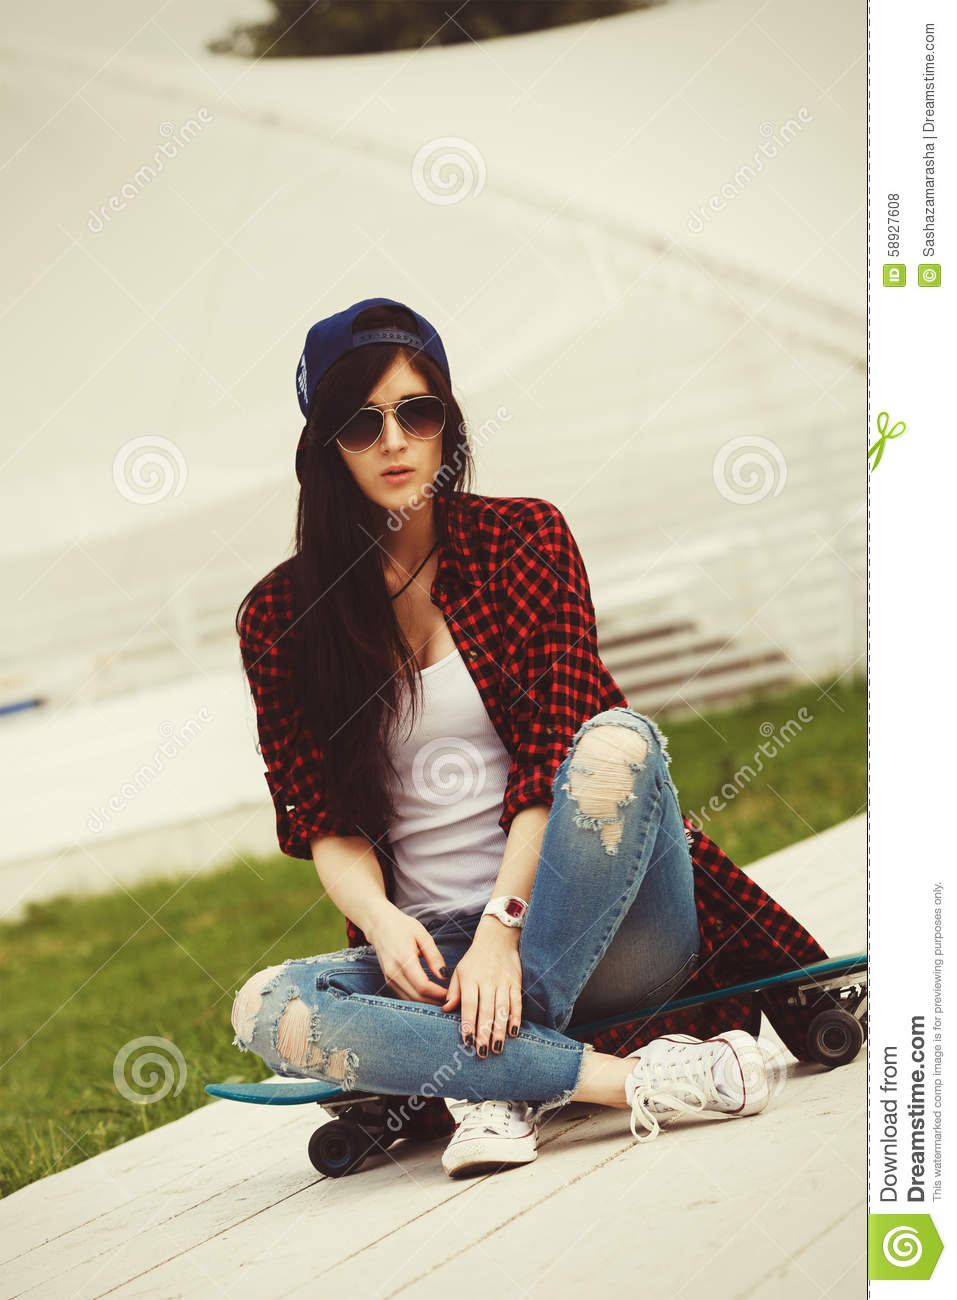 Girl Swagger Fashion Images Galleries With A Bite